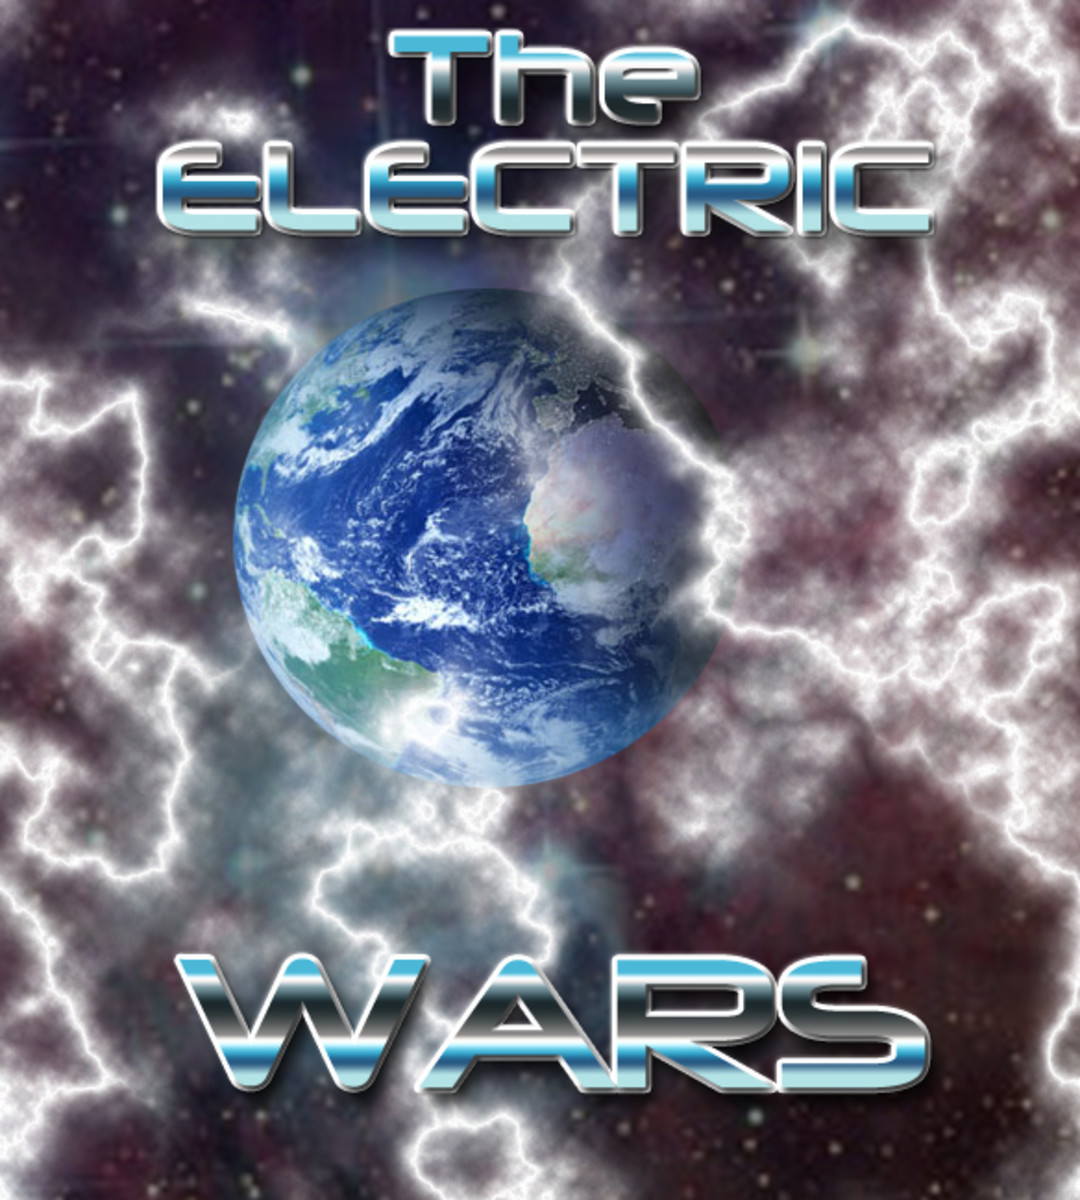 The Electric Wars, that lasted 900 years resulted in a major change for the course of human evolution on this planet. For millions of years humanity existed as immortals in a Golden Age, the Electric Wars ended all of that.